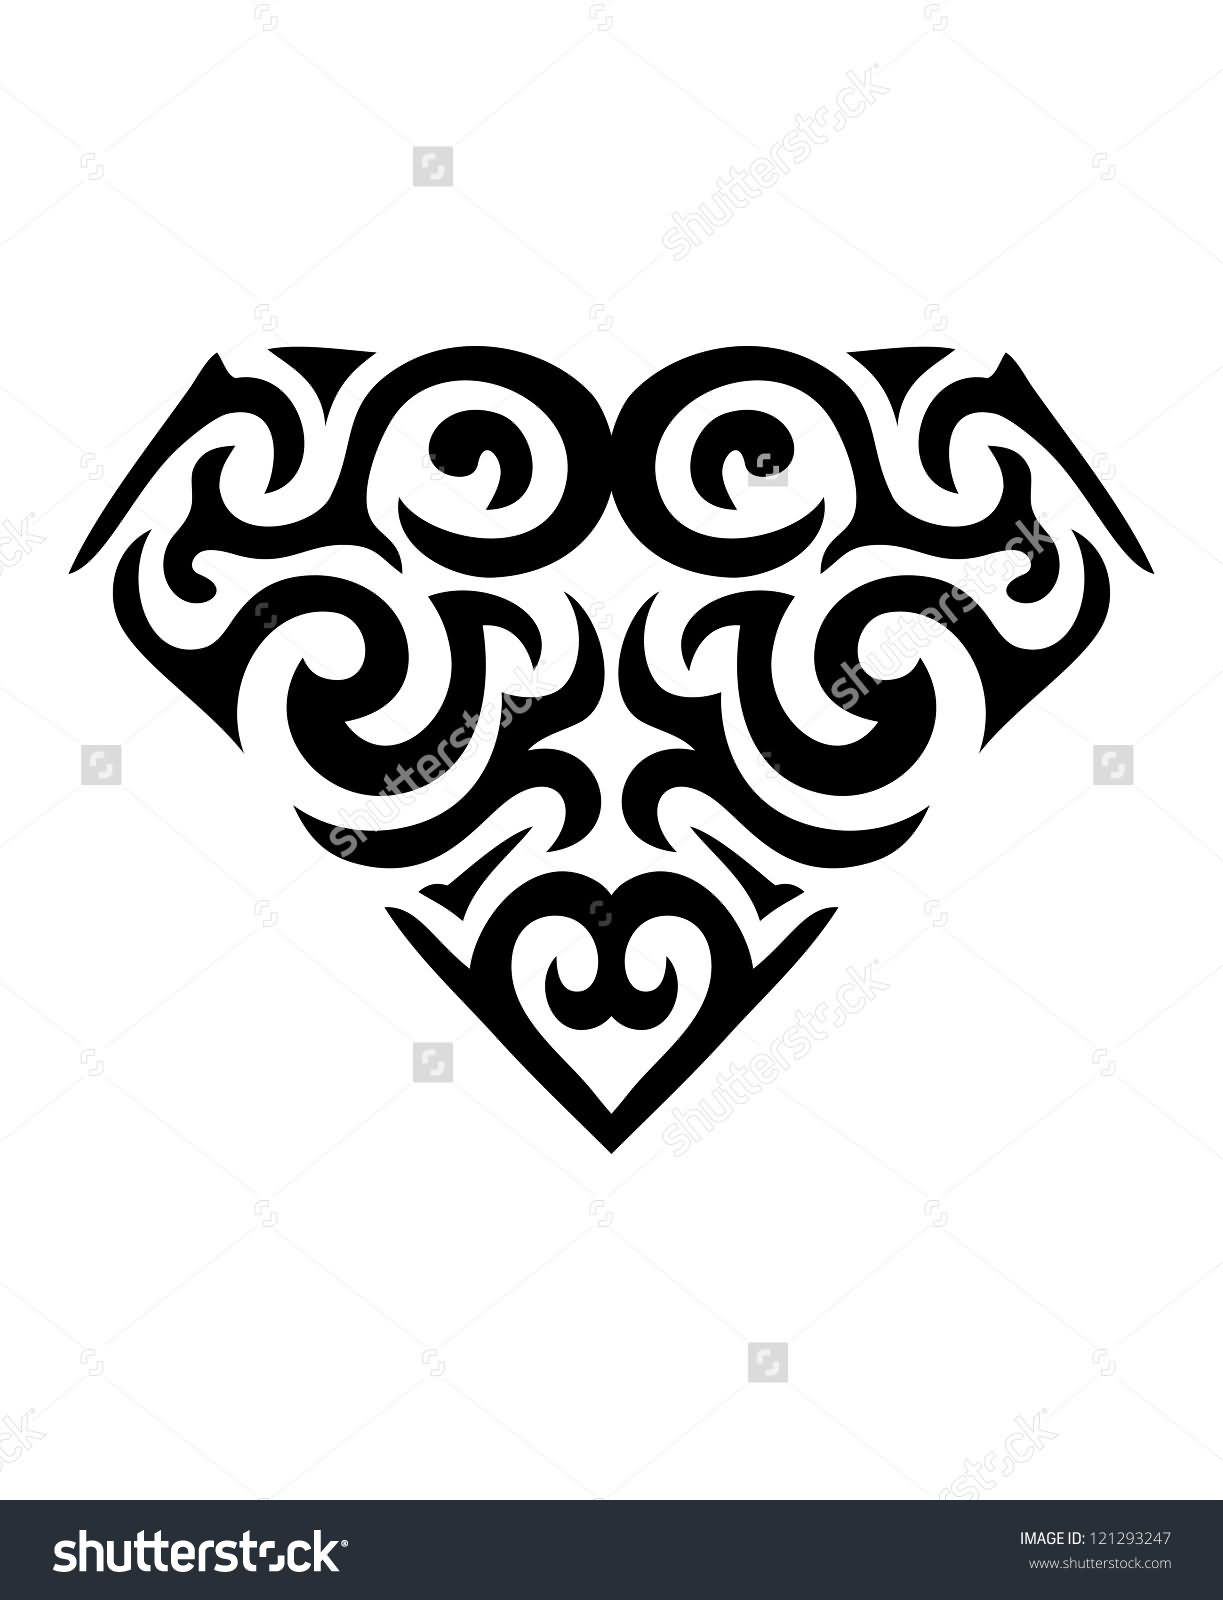 Cool Diamond Symbol Tattoo Design Just Cool Tattoos In 2018